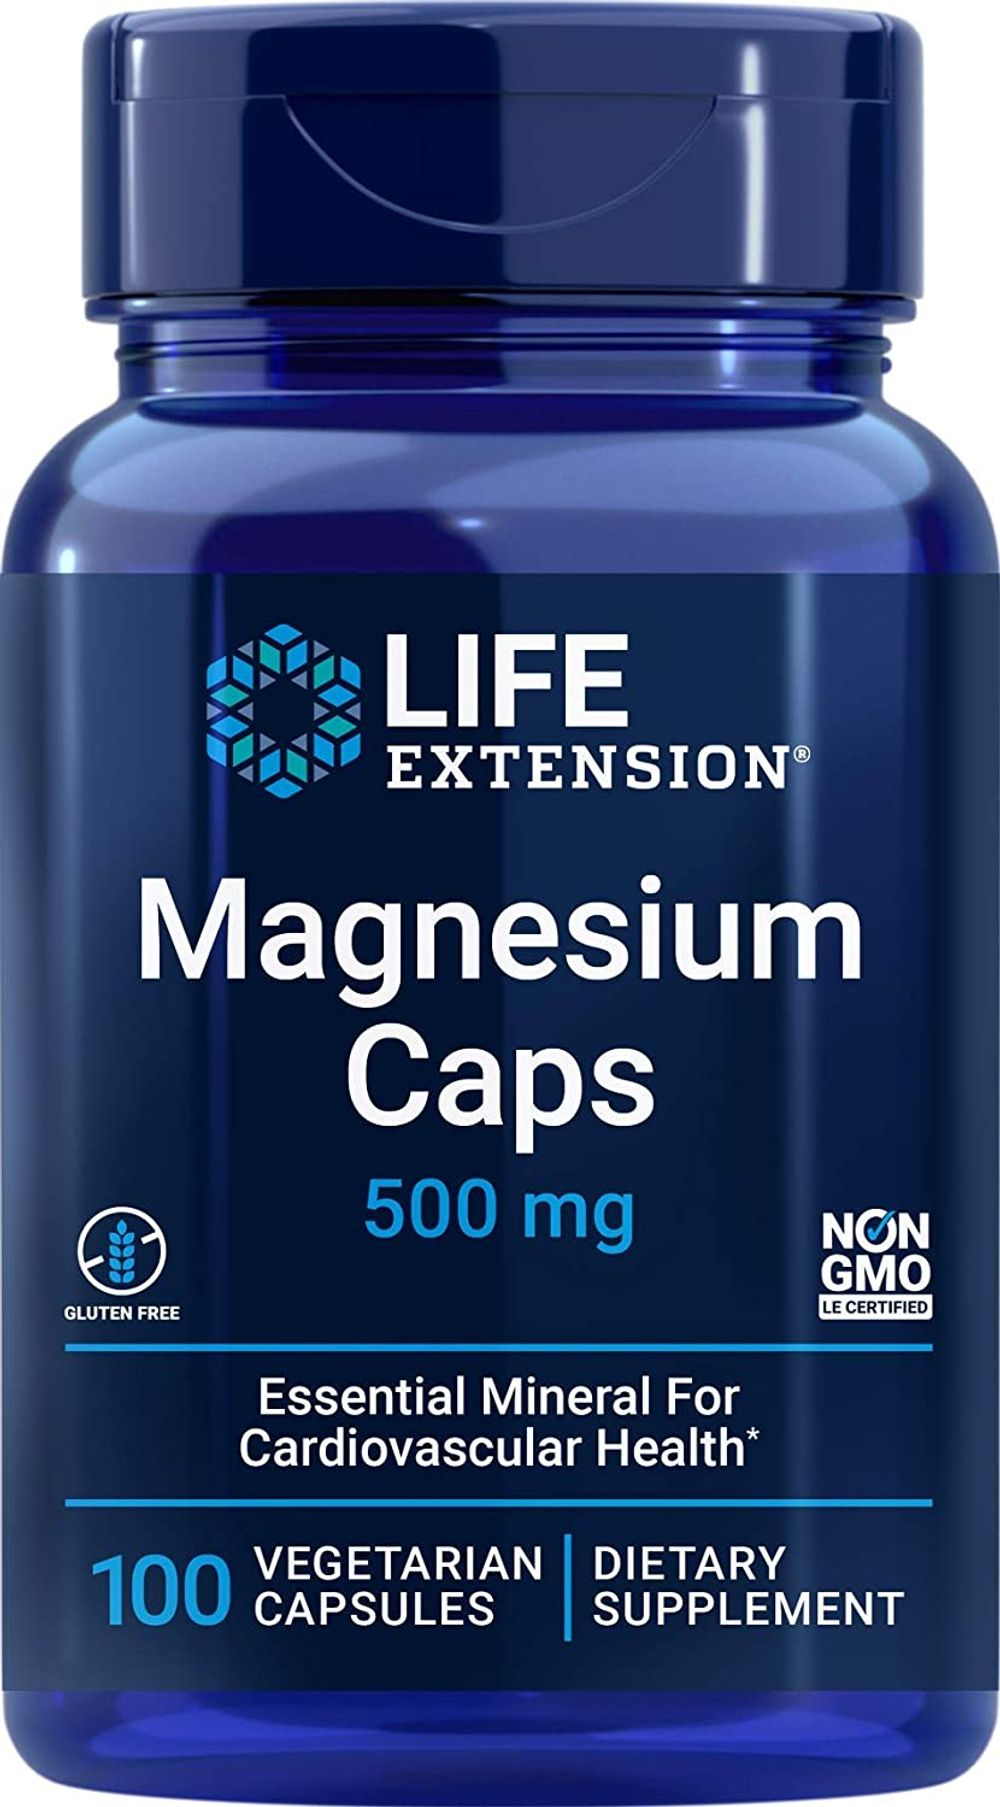 Life Extension Magnesium Caps 500 mg – Essential Mineral Blend For Cardiovascular & Whole-Body Health – Gluten-Free, Non-GMO, Vegetarian -100 Vegetarian Capsules